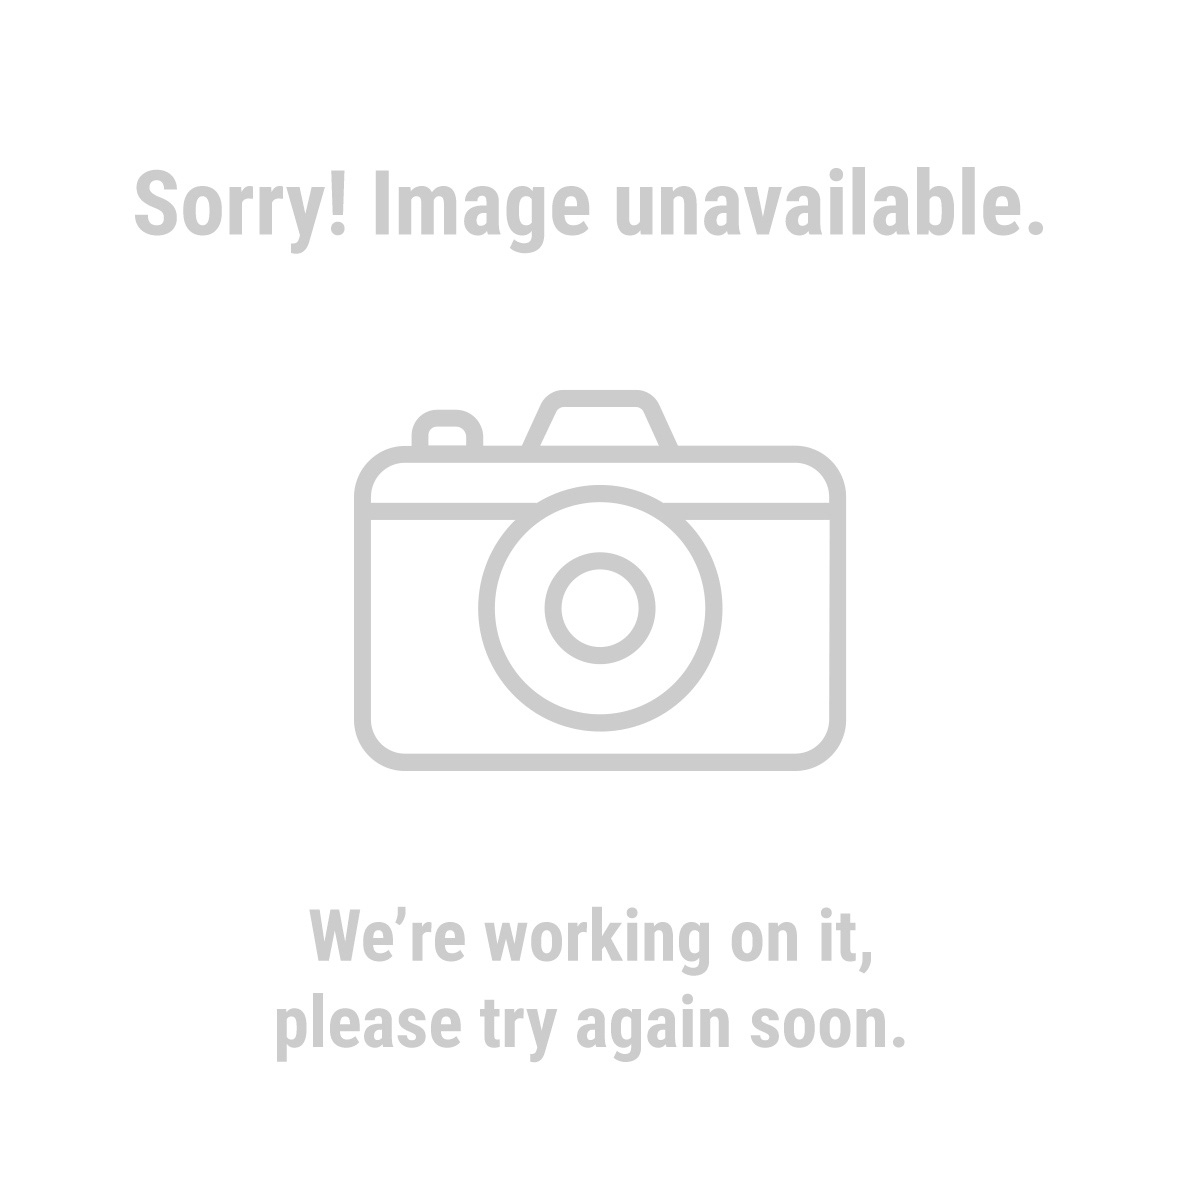 "Haul-Master 30900 10"" Pneumatic Tire"